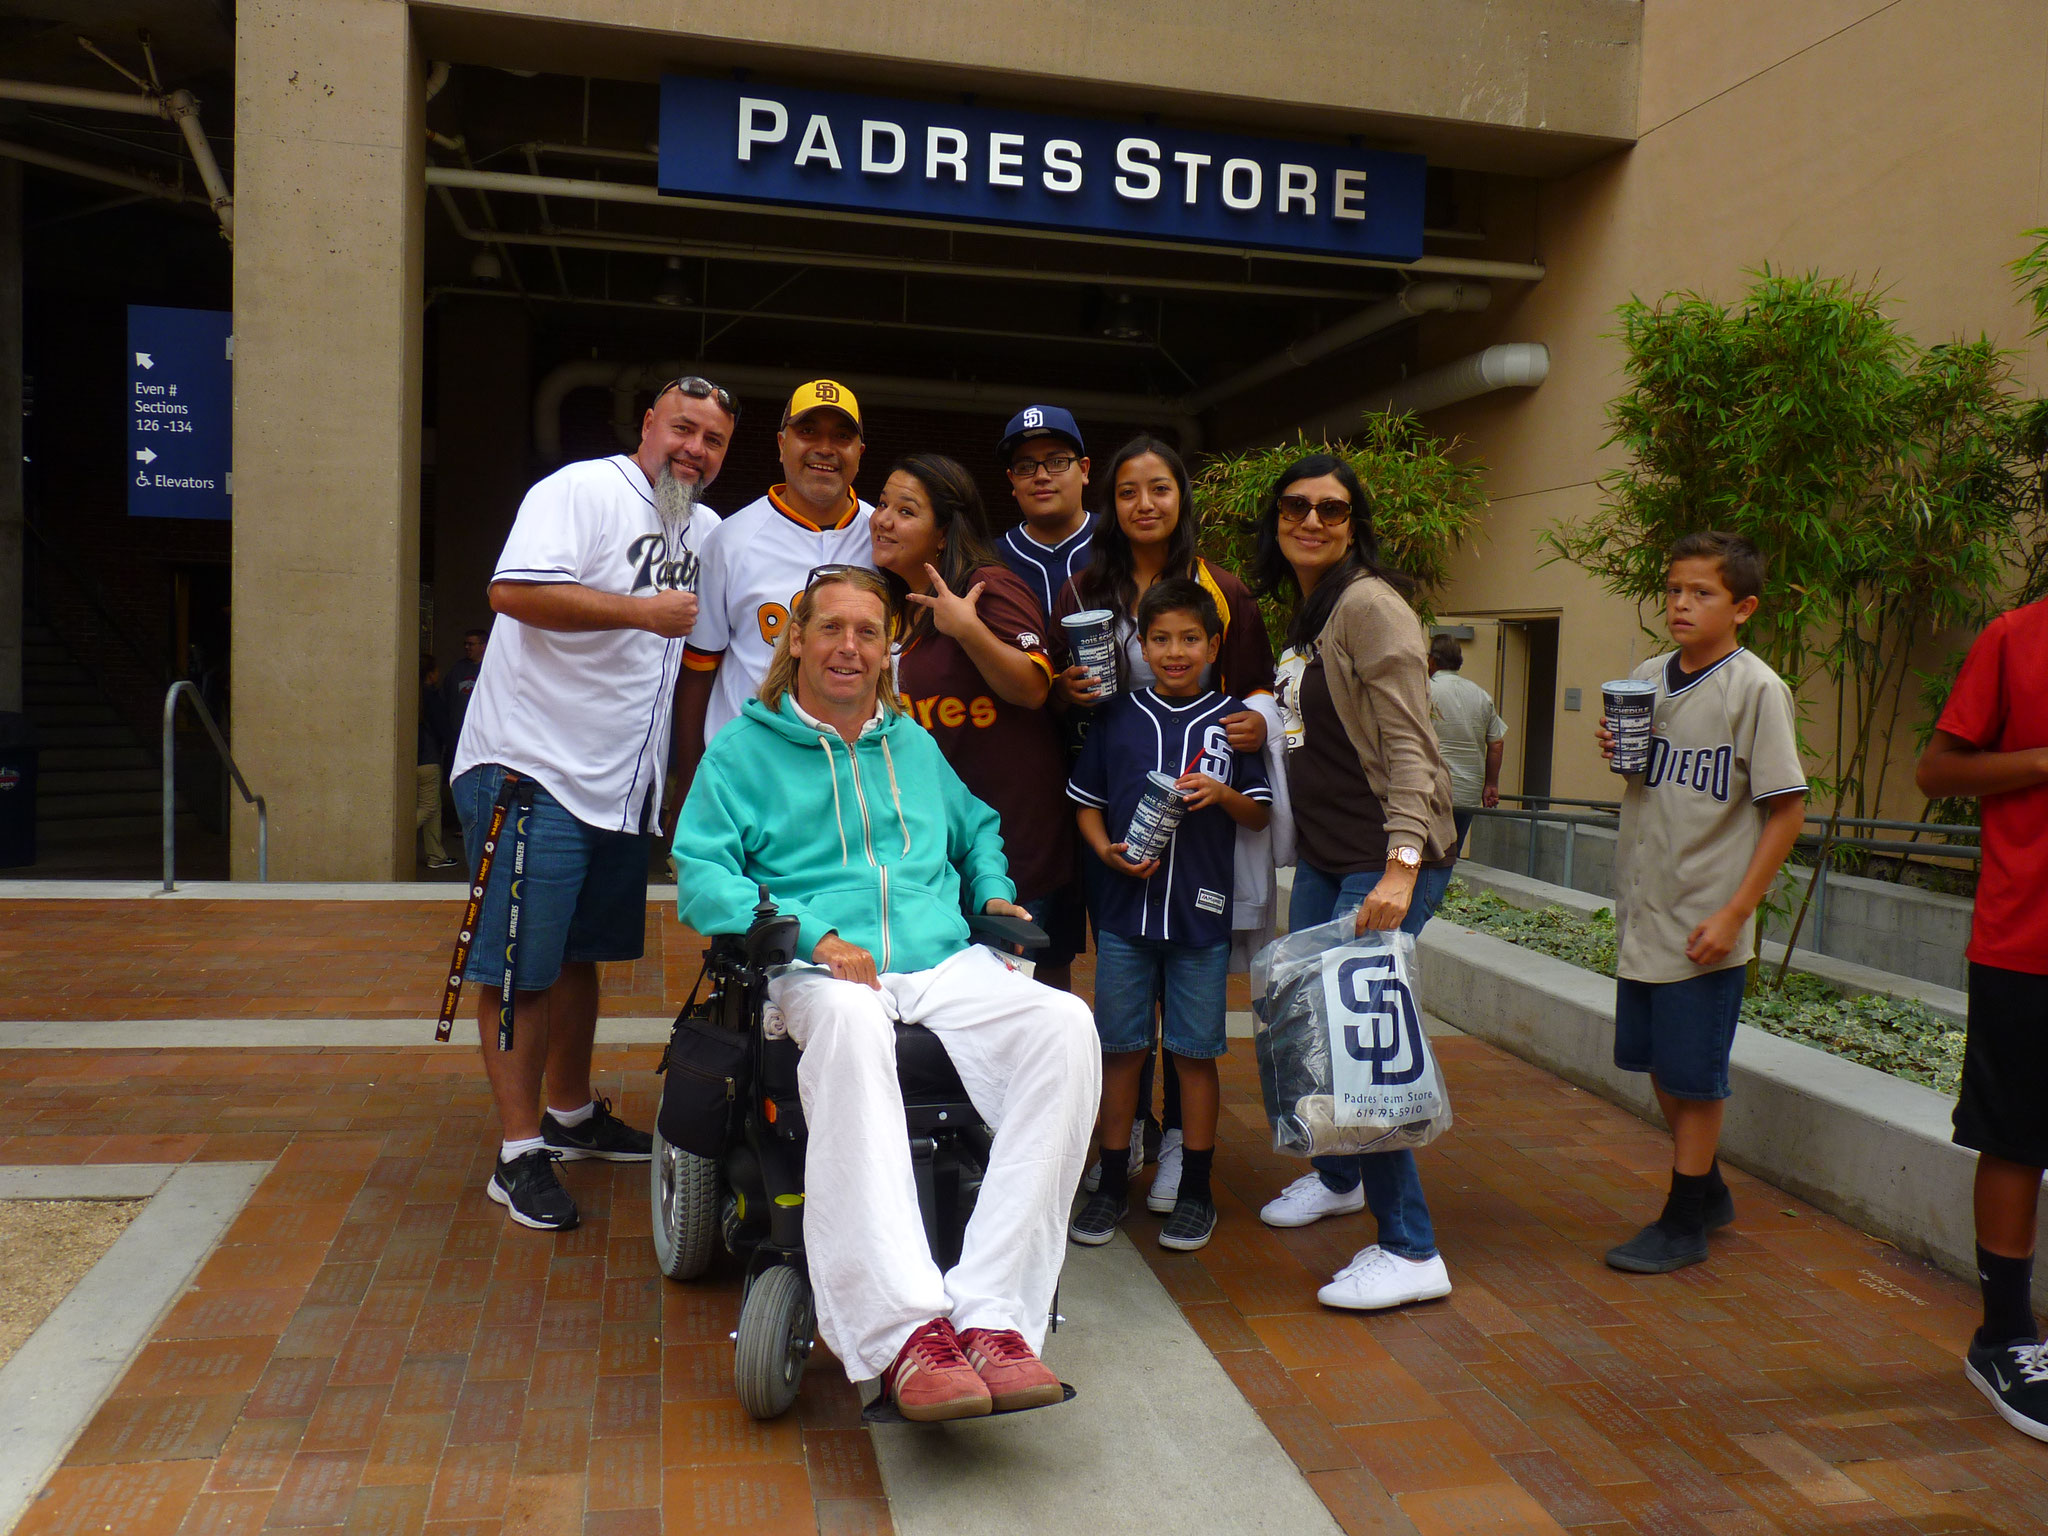 Padres Fans : San Diego Padres vs Washington Nationals (2015-16)